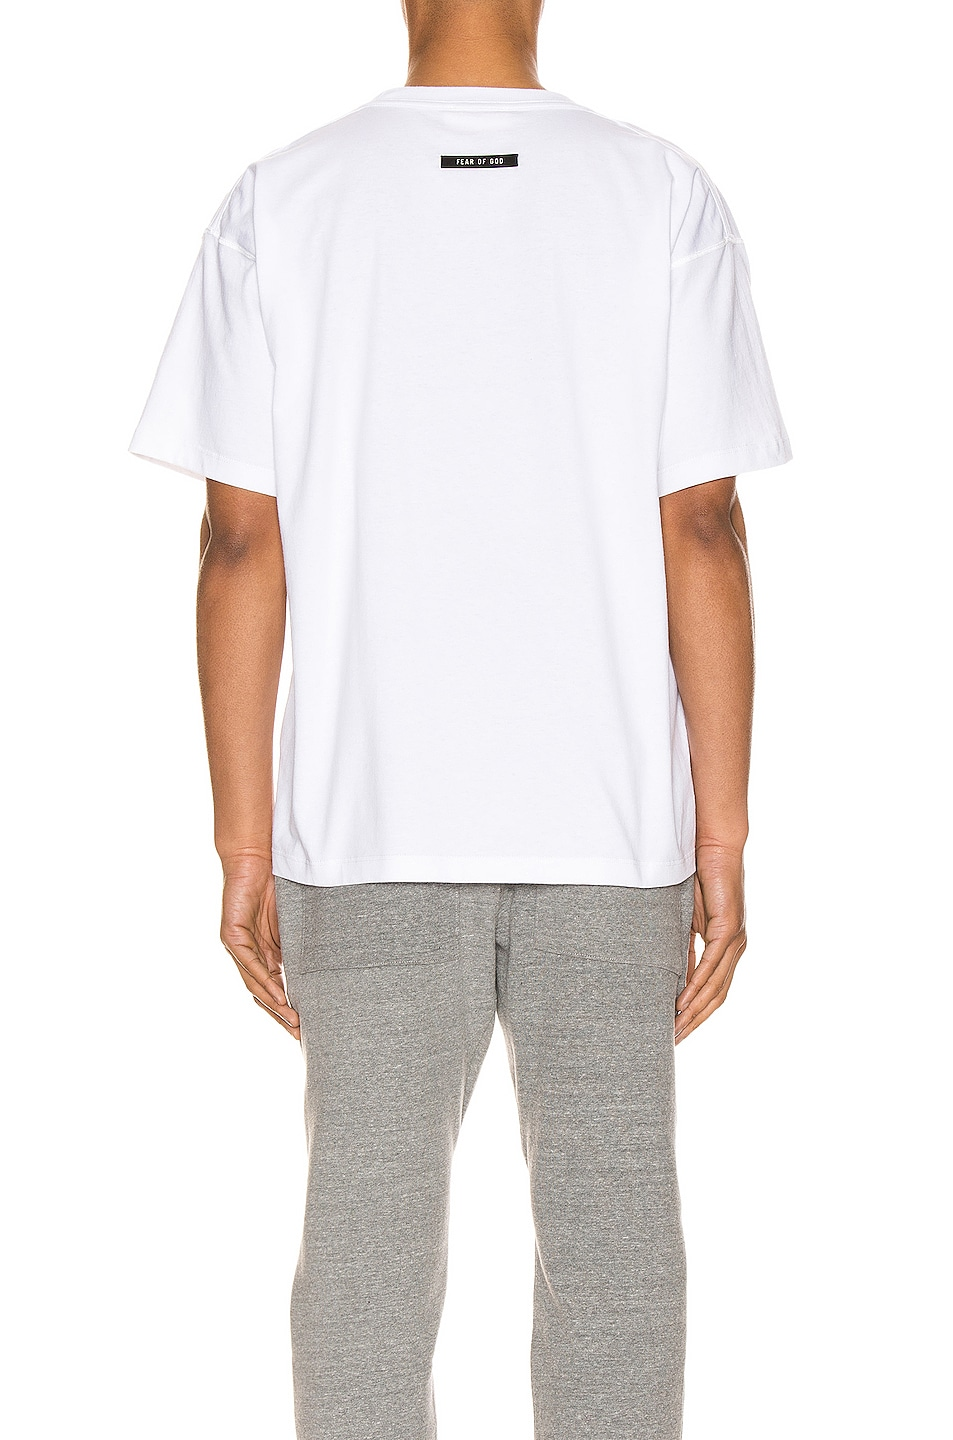 Image 3 of Fear of God Short Sleeve FG 3M Tee in White